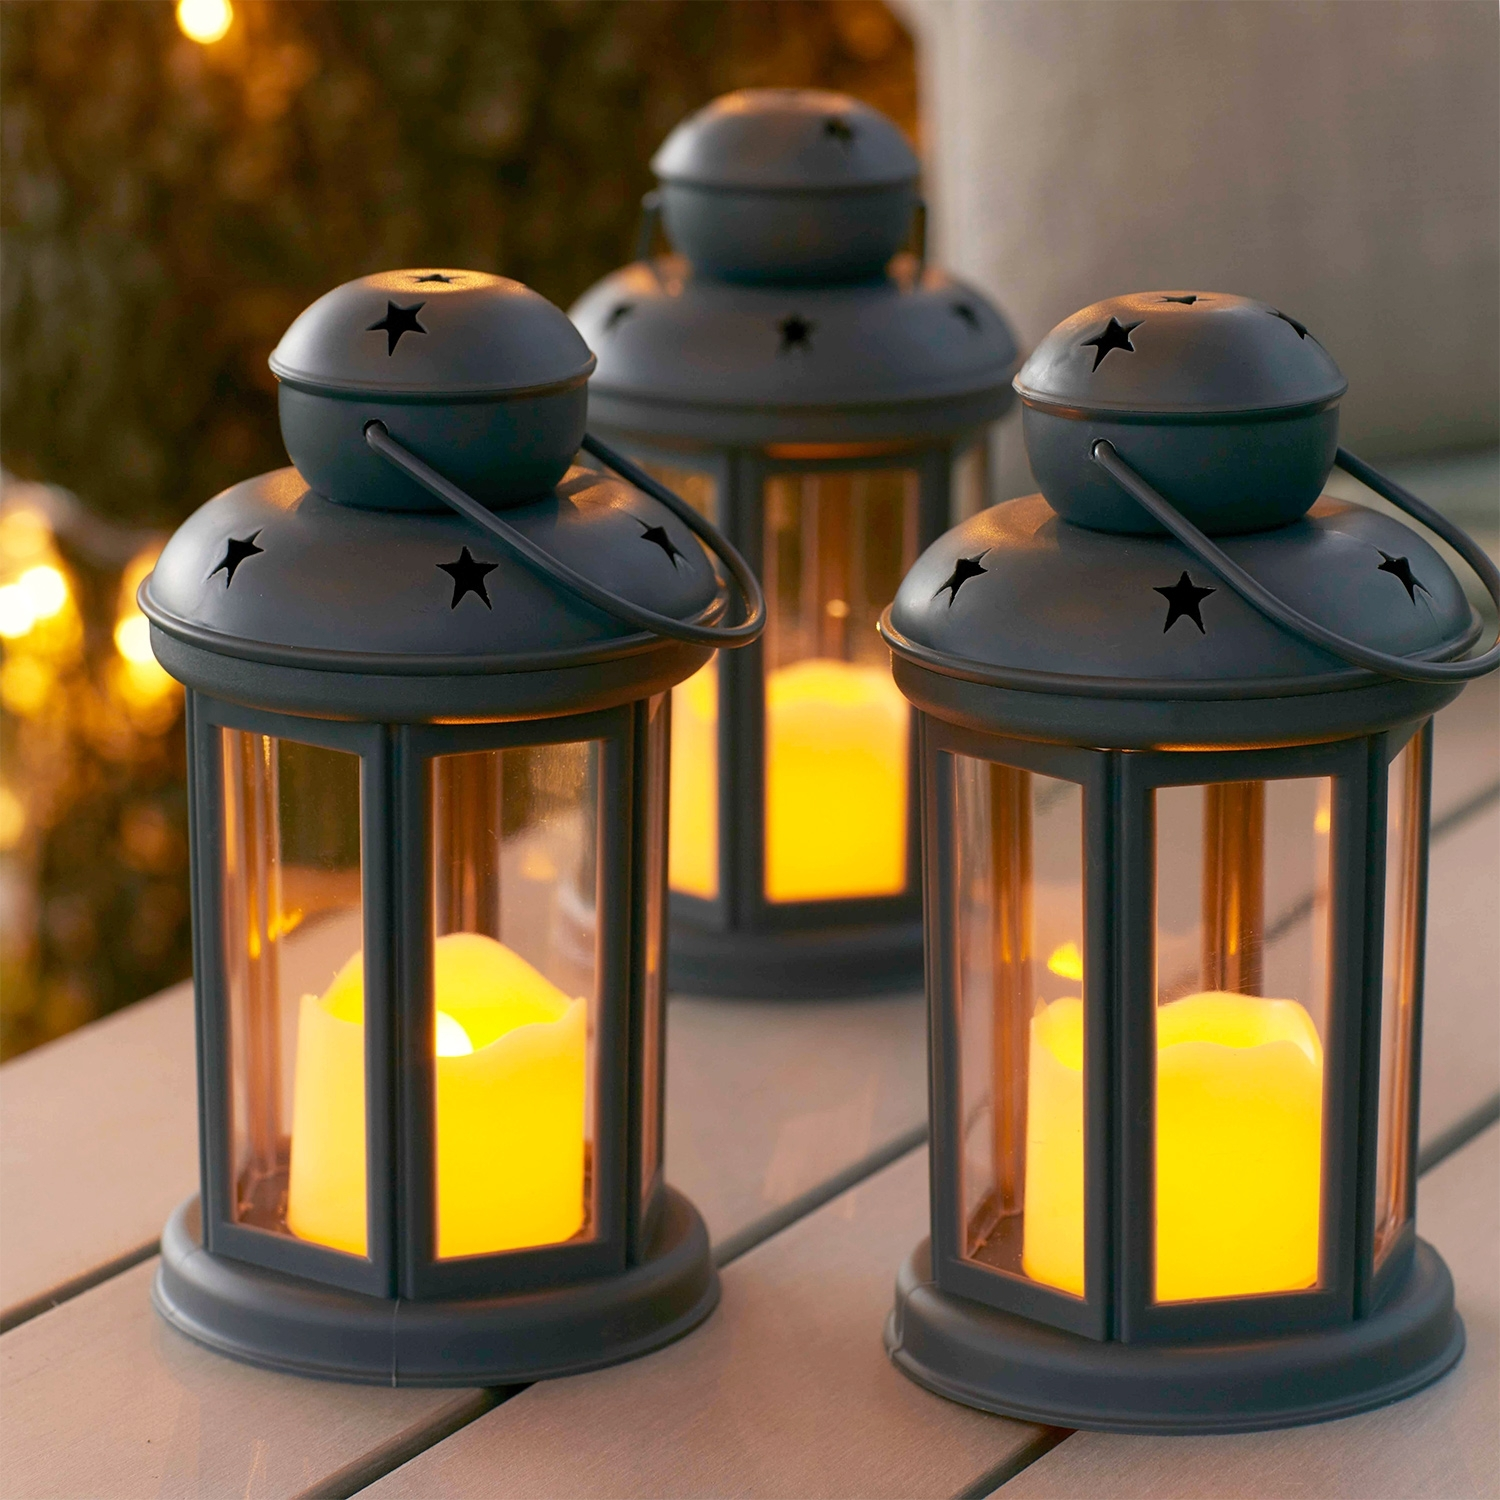 Set Of 3 Grey Battery Operated Led Indoor Outdoor Flameless Candle regarding Outdoor Lanterns With Battery Candles (Image 16 of 20)